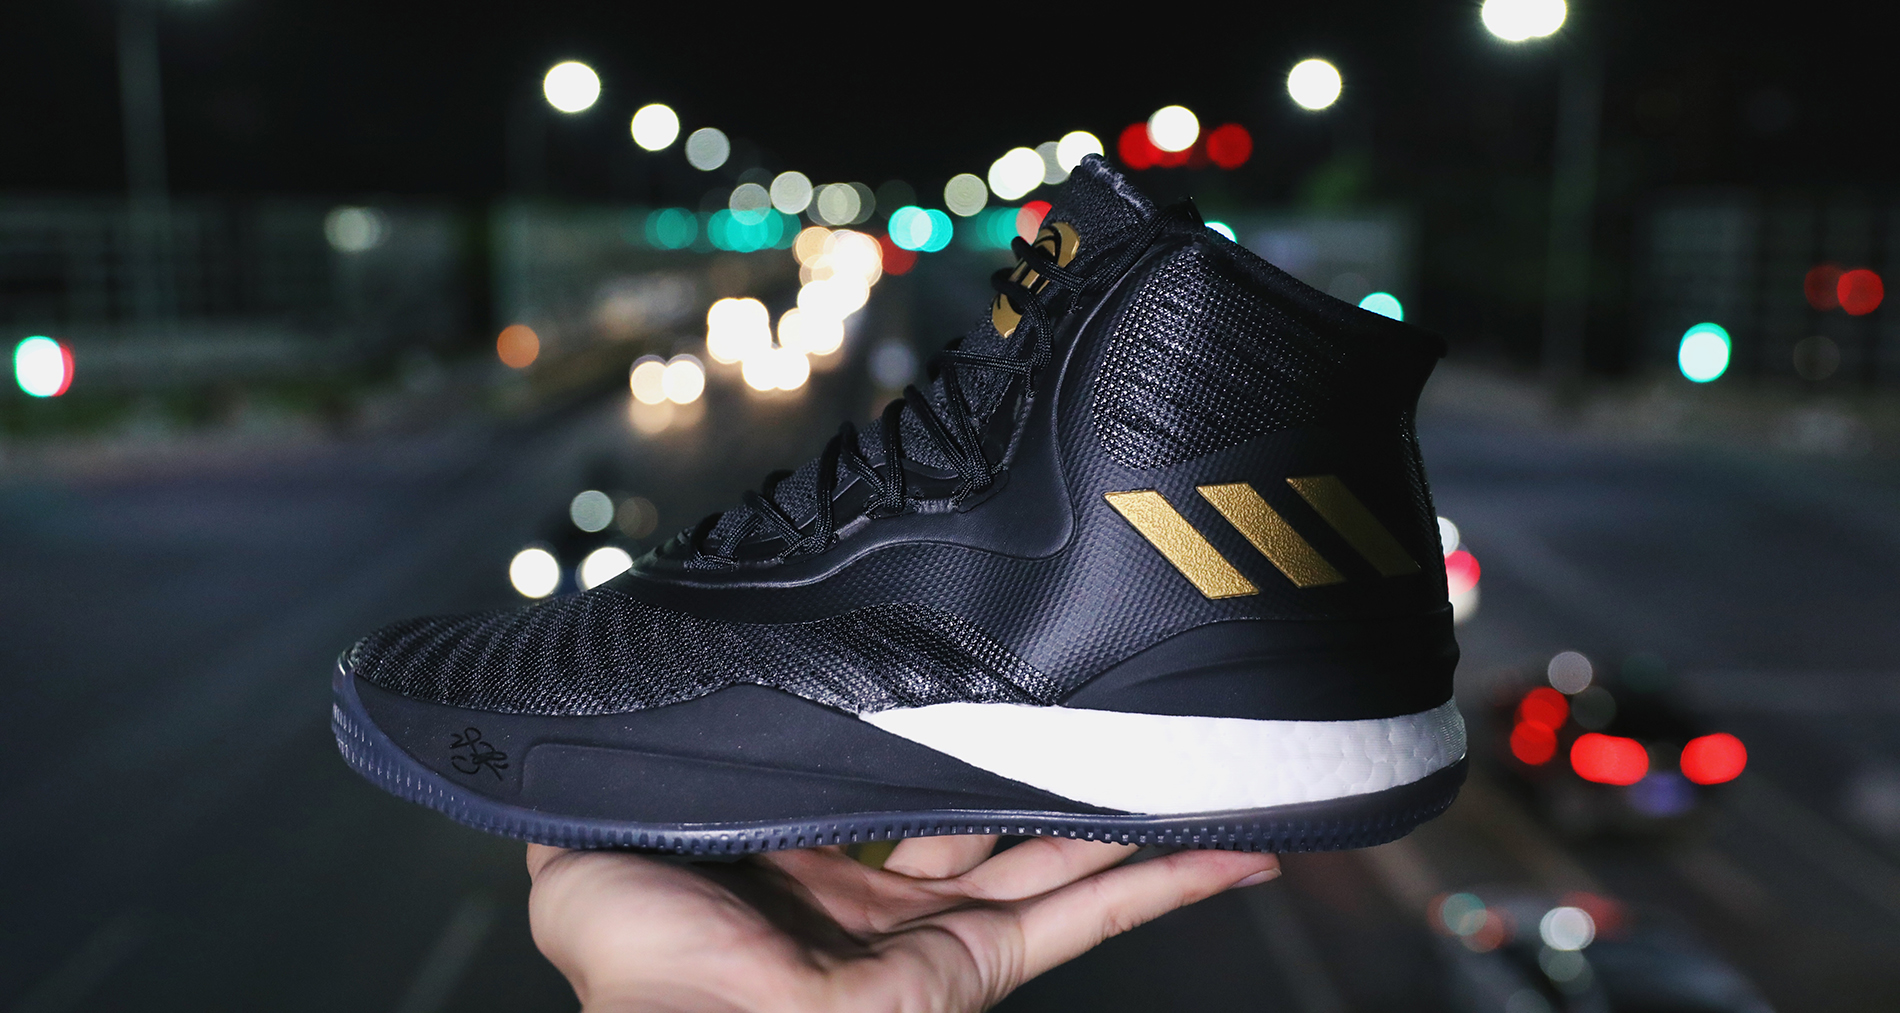 Adidas D Rose negro / Gold Nice kicks